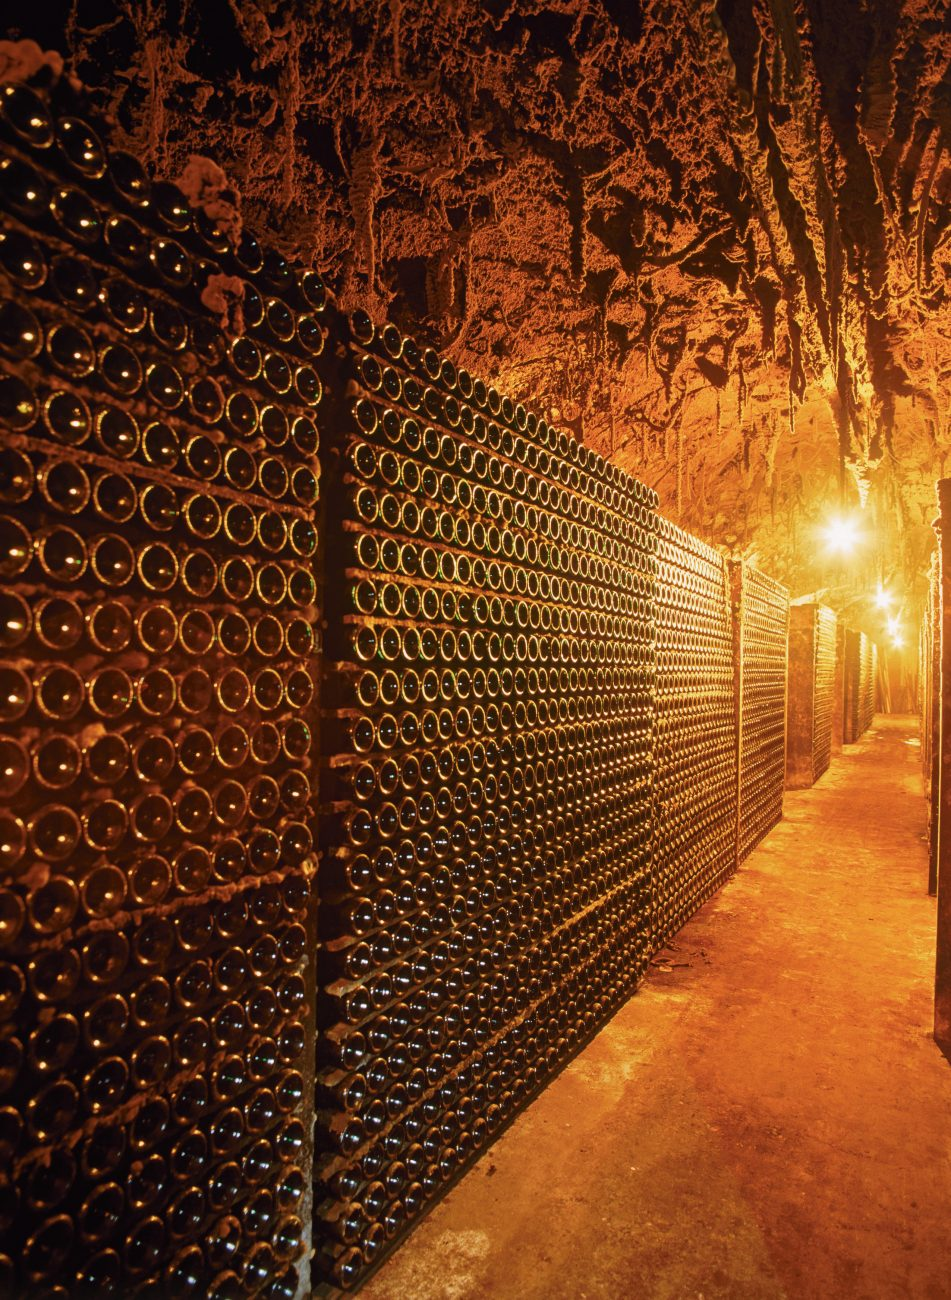 Subterranean chambers—in which many wines are fermented and stored—could become the only dependable climate for future winemakers.